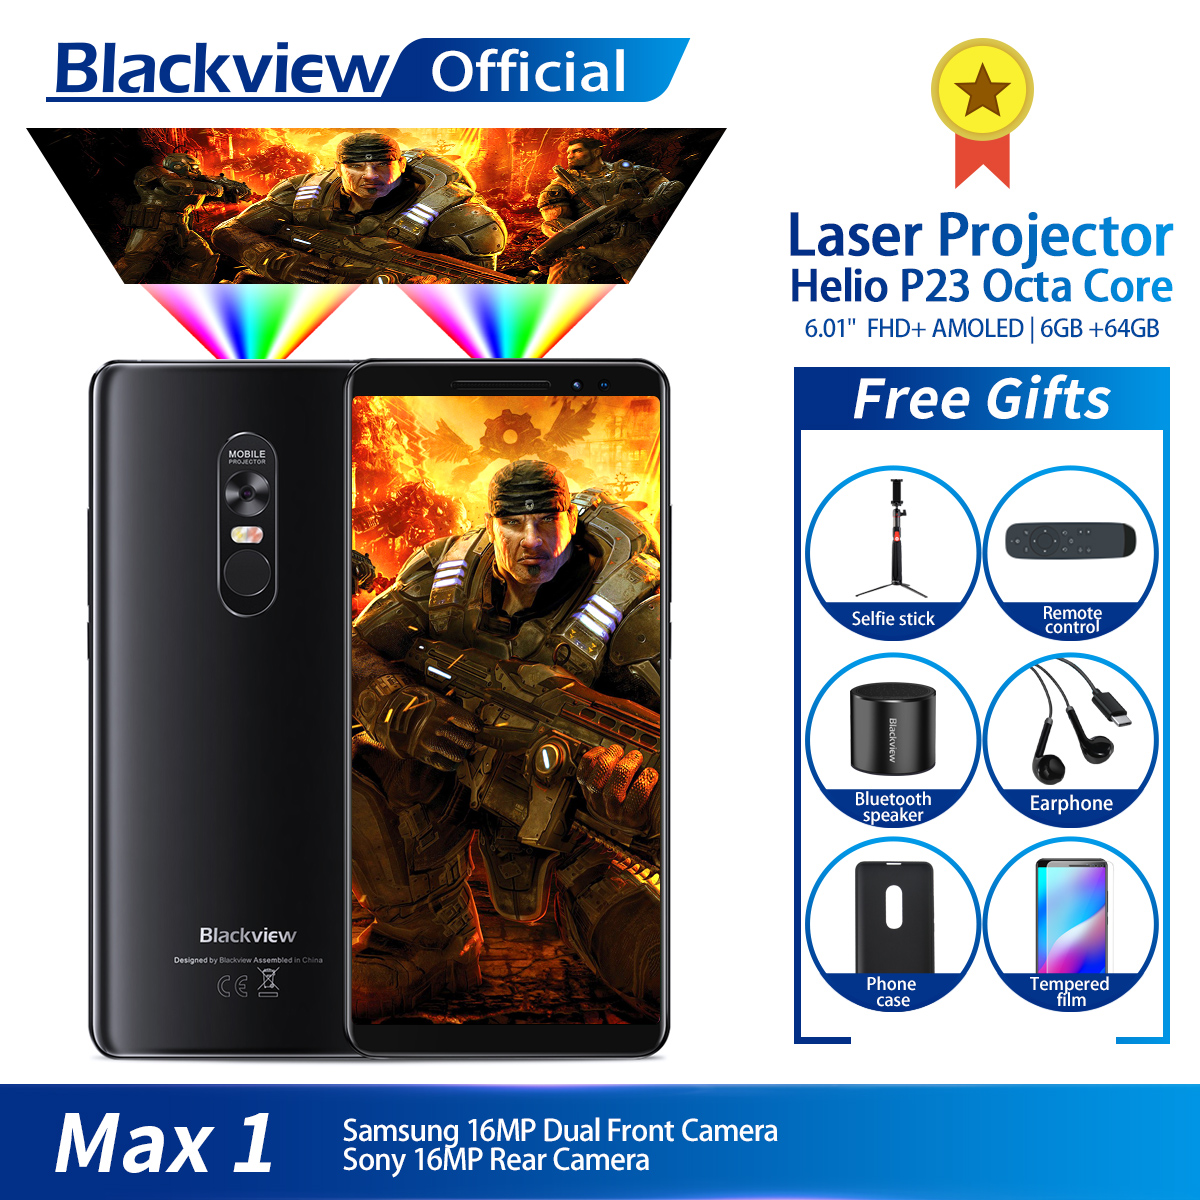 Blackview MAX 1 Wireless Projector Mobile Phone 6 01 AMOLED 4680mAh Android 8 1 6GB 64GB